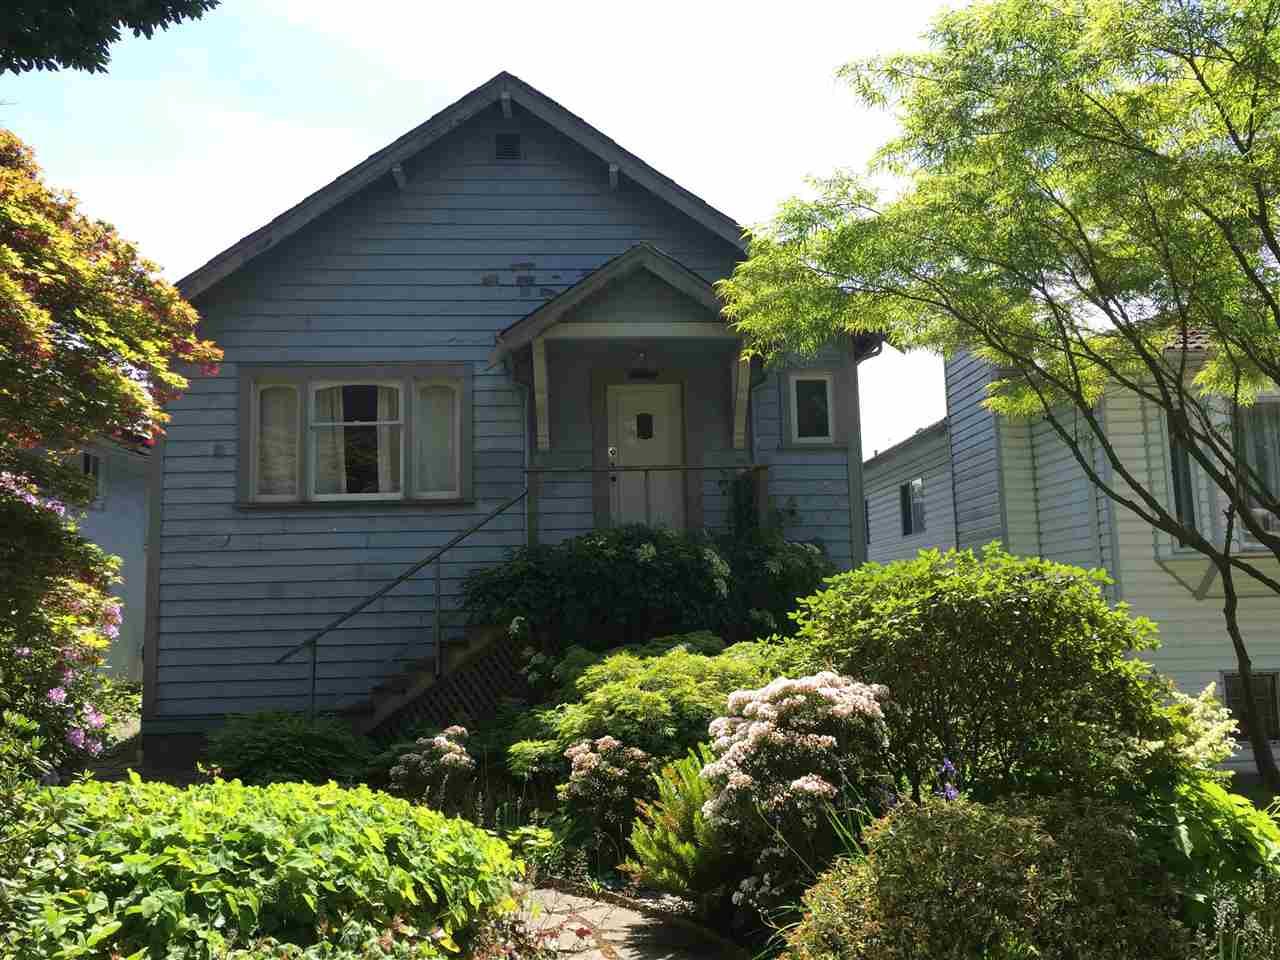 Main Photo: 3240 WILLIAM Street in Vancouver: Renfrew VE House for sale (Vancouver East)  : MLS® # R2070040